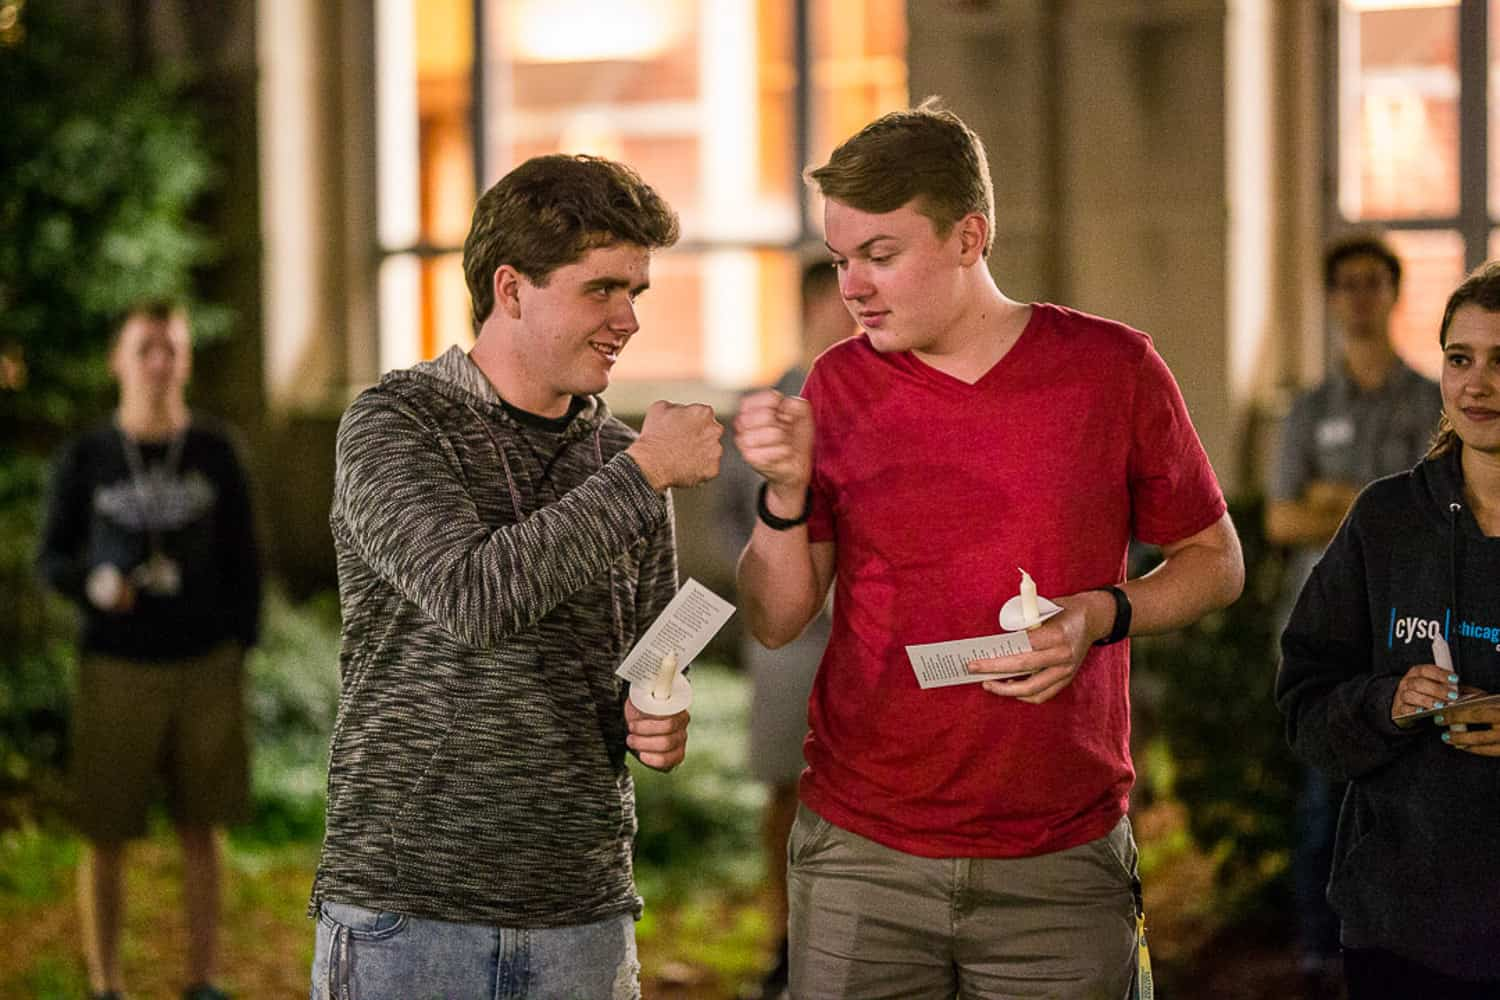 Photograph two friend sfist bumping at the Eastman School of Music candlelight ceremony event.